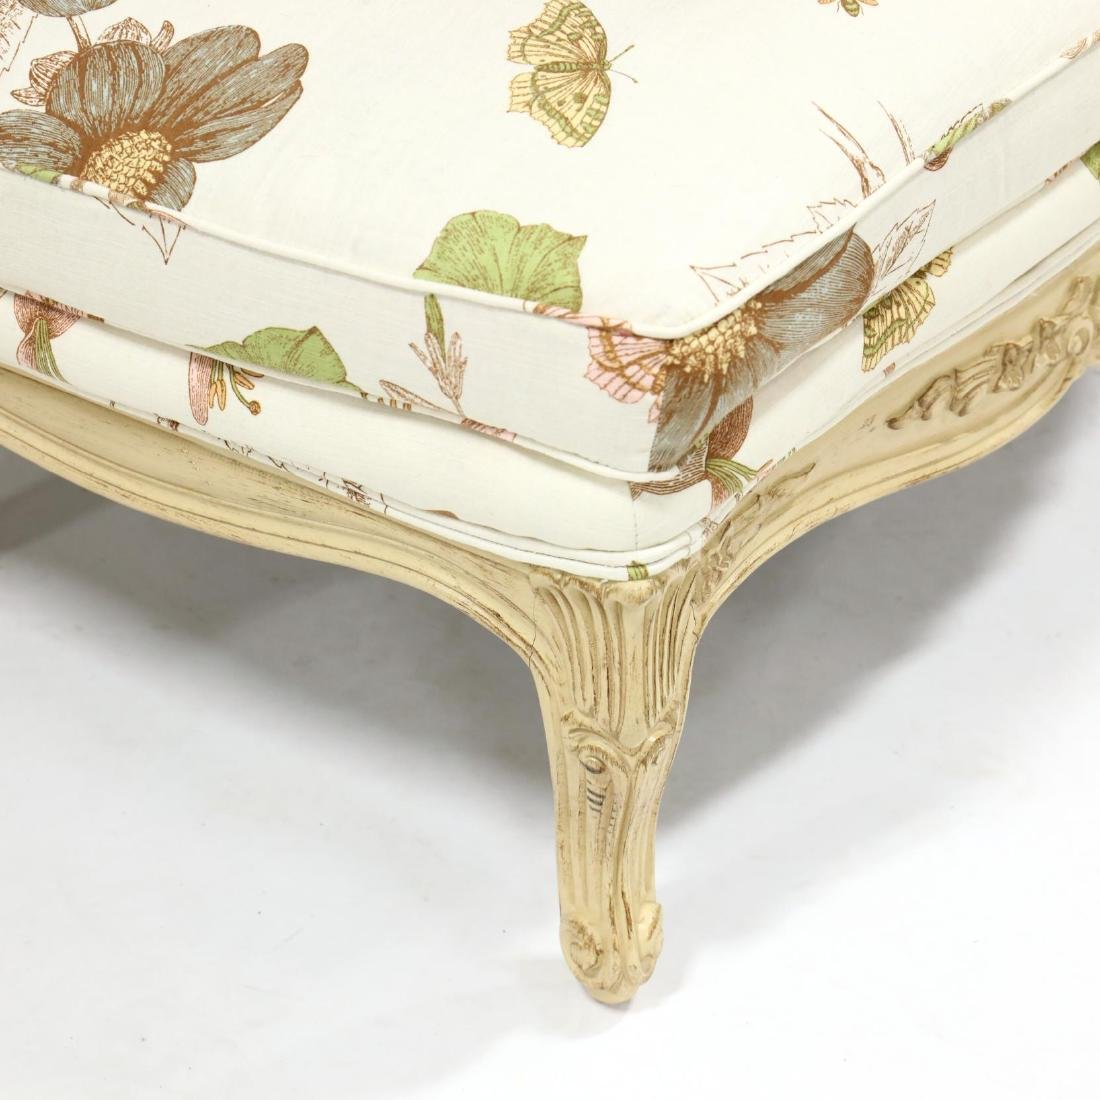 French Provincial Style Carved and Painted Ottoman - 2